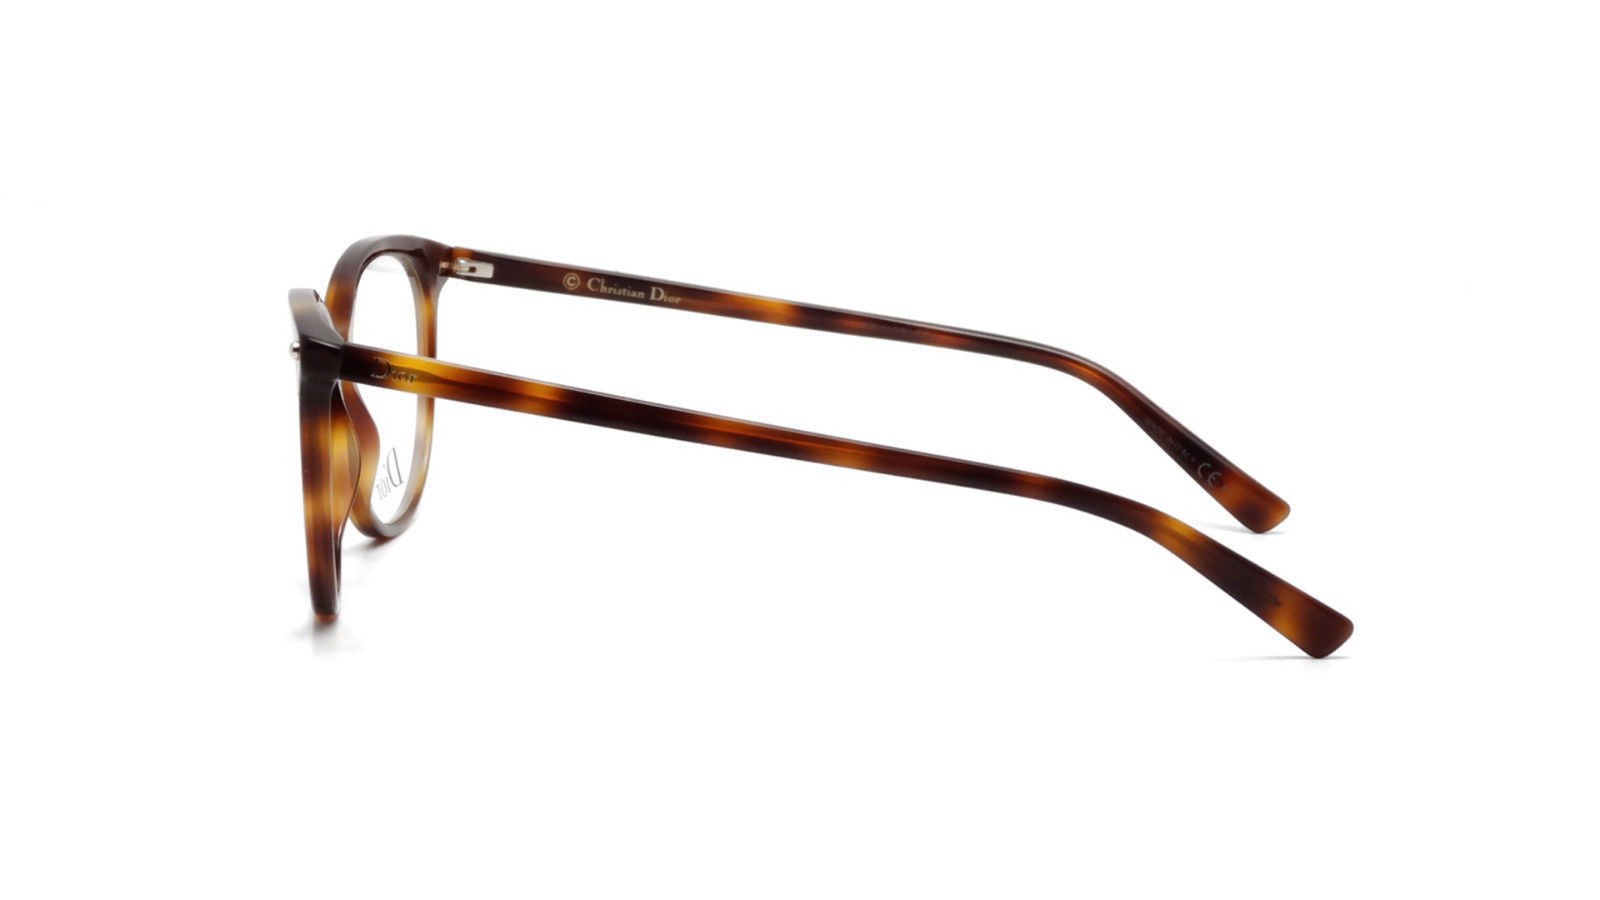 290bb64f277b Dior Eyeglasses 3284 Havana 05L Women s Designer Optical Frame CD3284 53mm